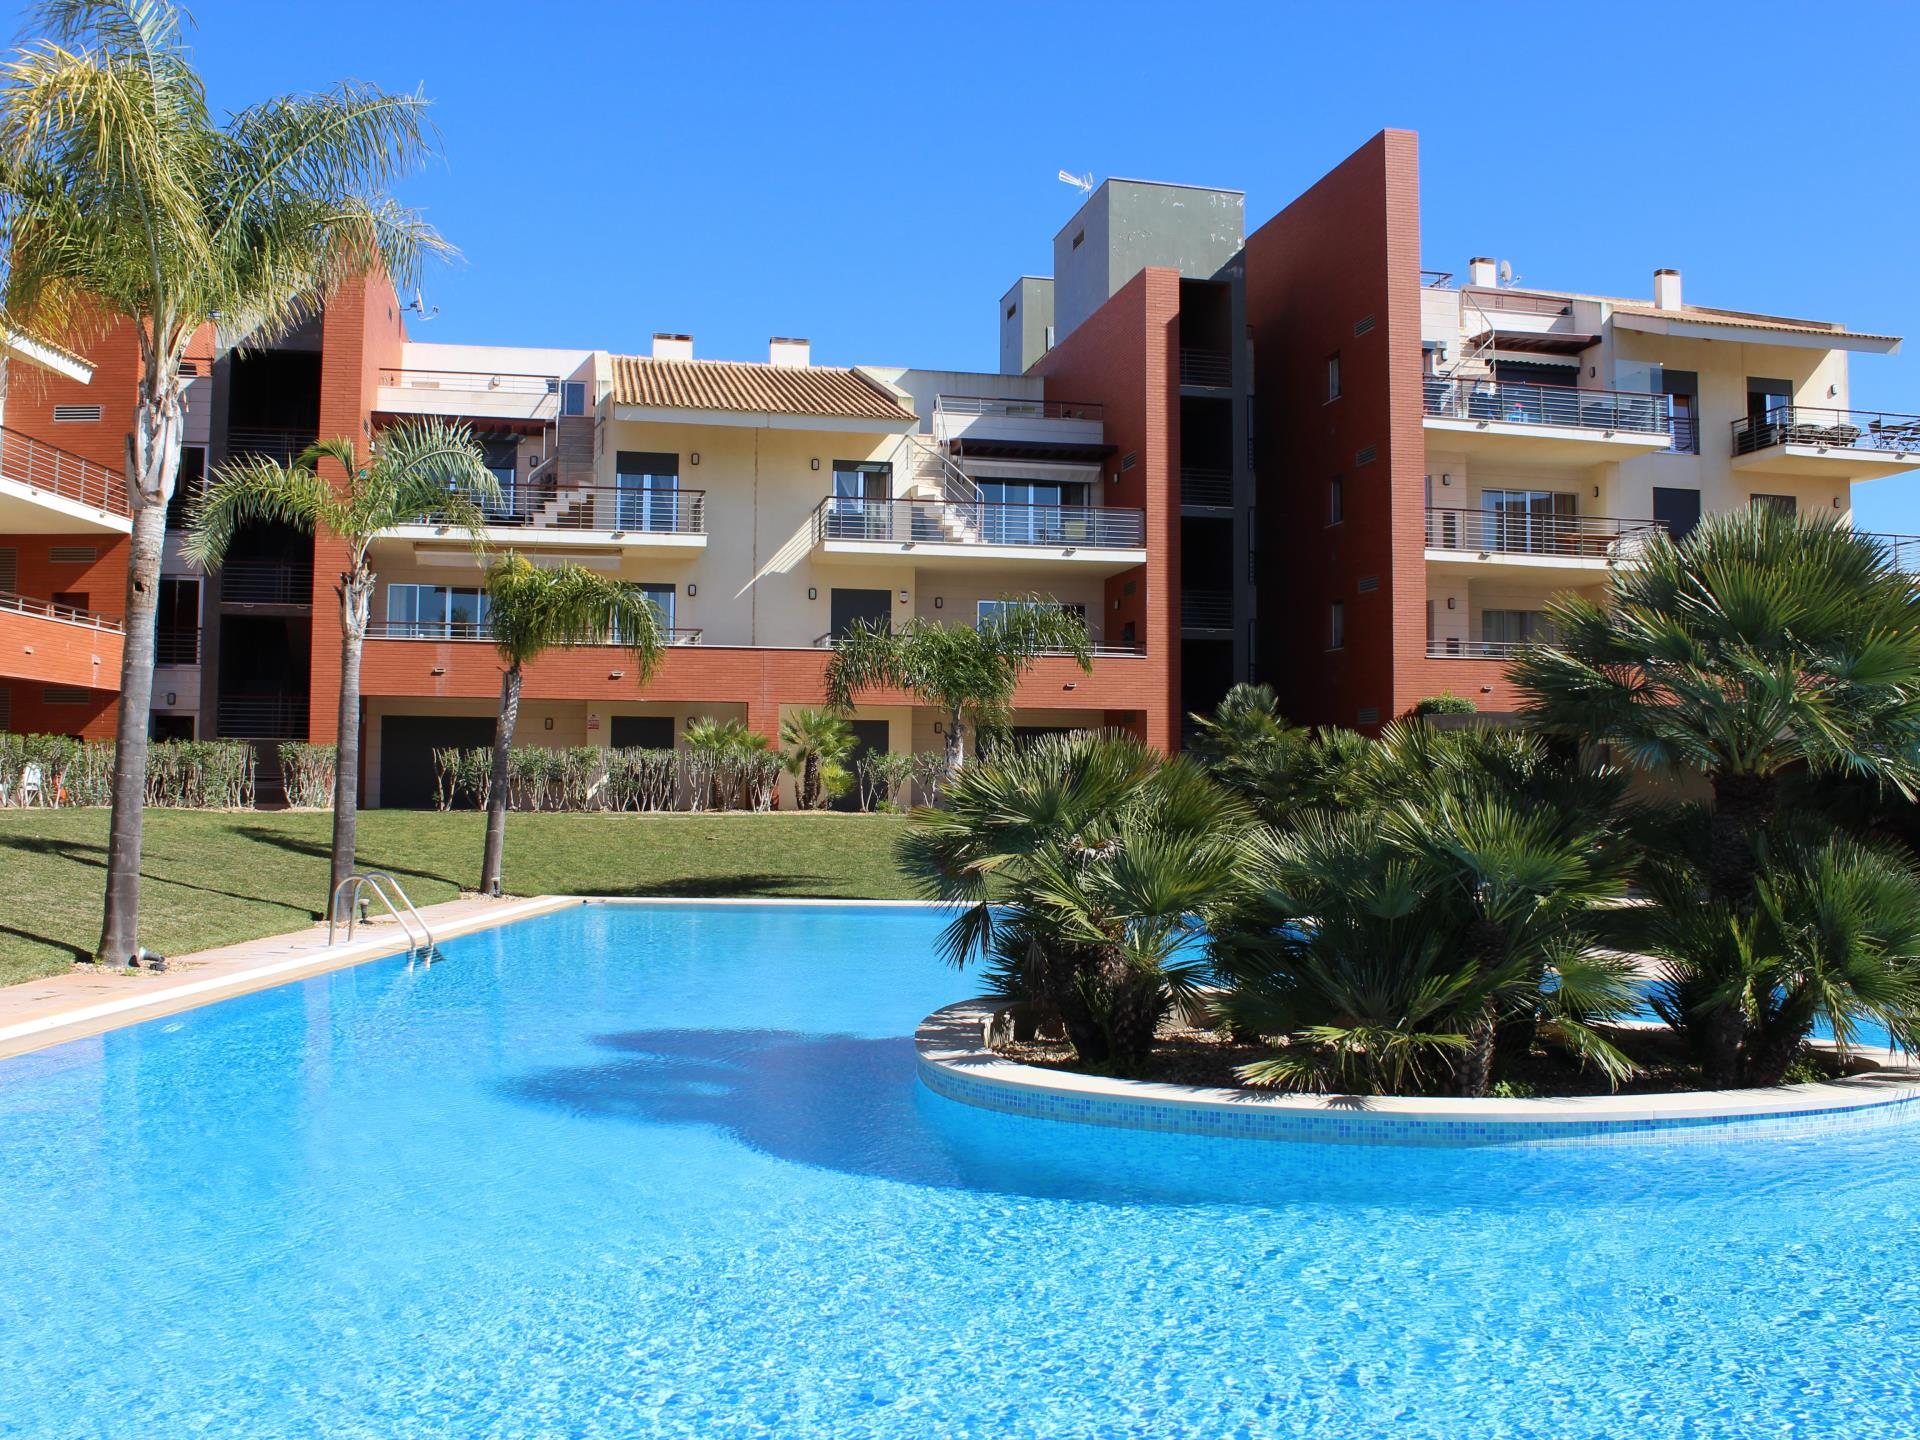 Apartment for Sale at Flat, 3 bedrooms, for Sale Loule, Algarve Portugal